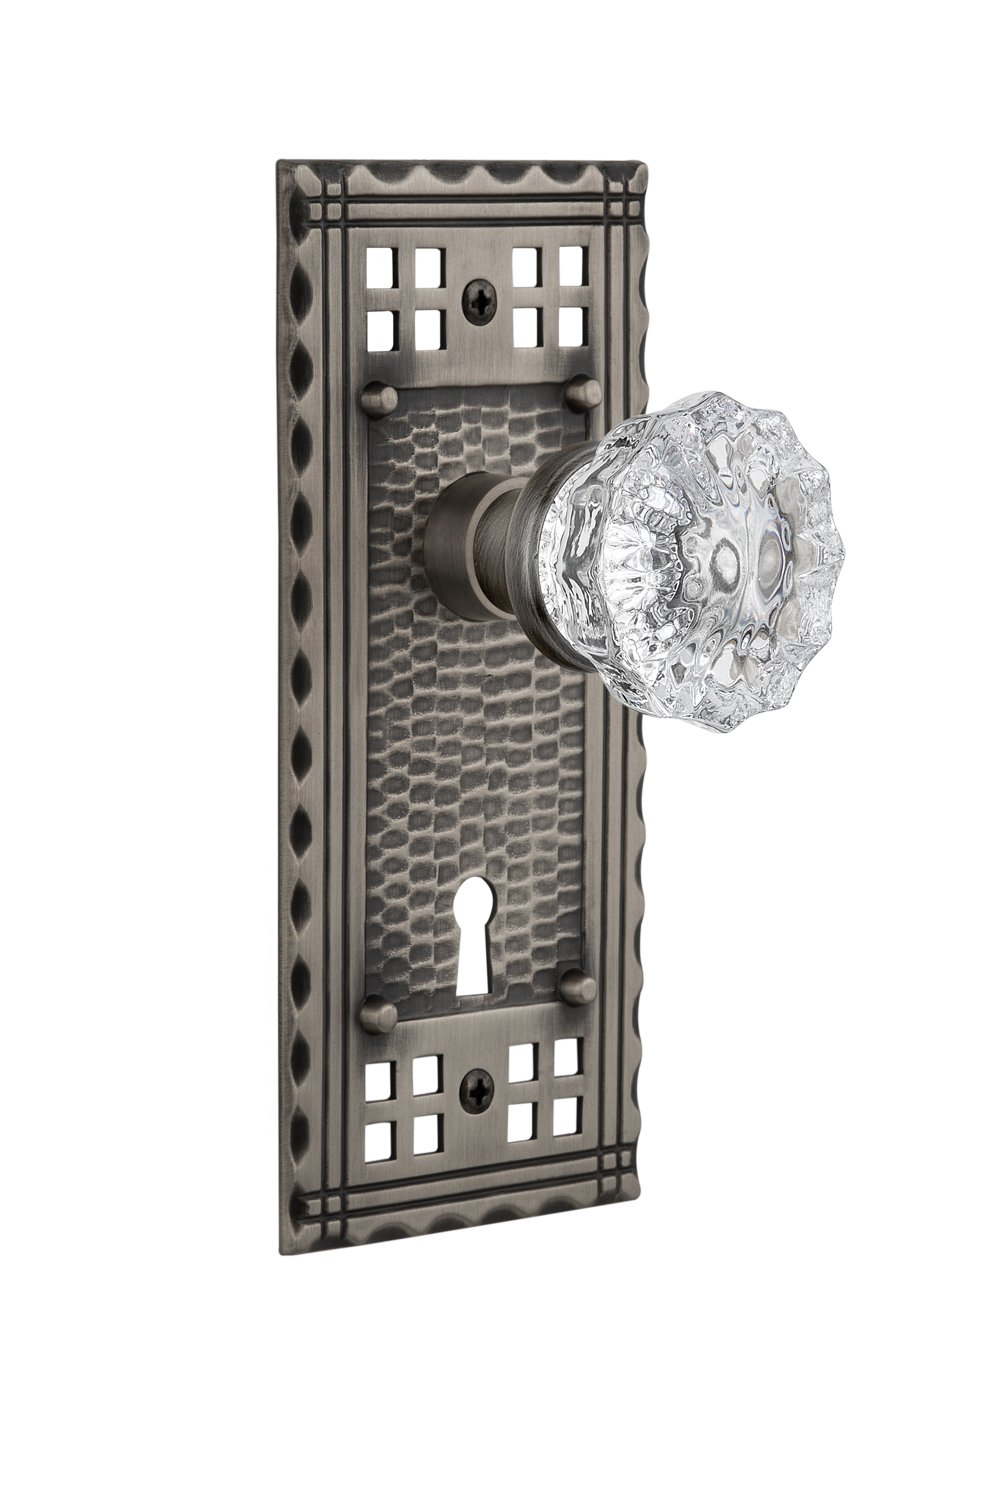 2.25 715742 Antique Brass Mortise Nostalgic Warehouse Craftsman Plate with Keyhole Crystal Glass Knob 2.25 Mortise